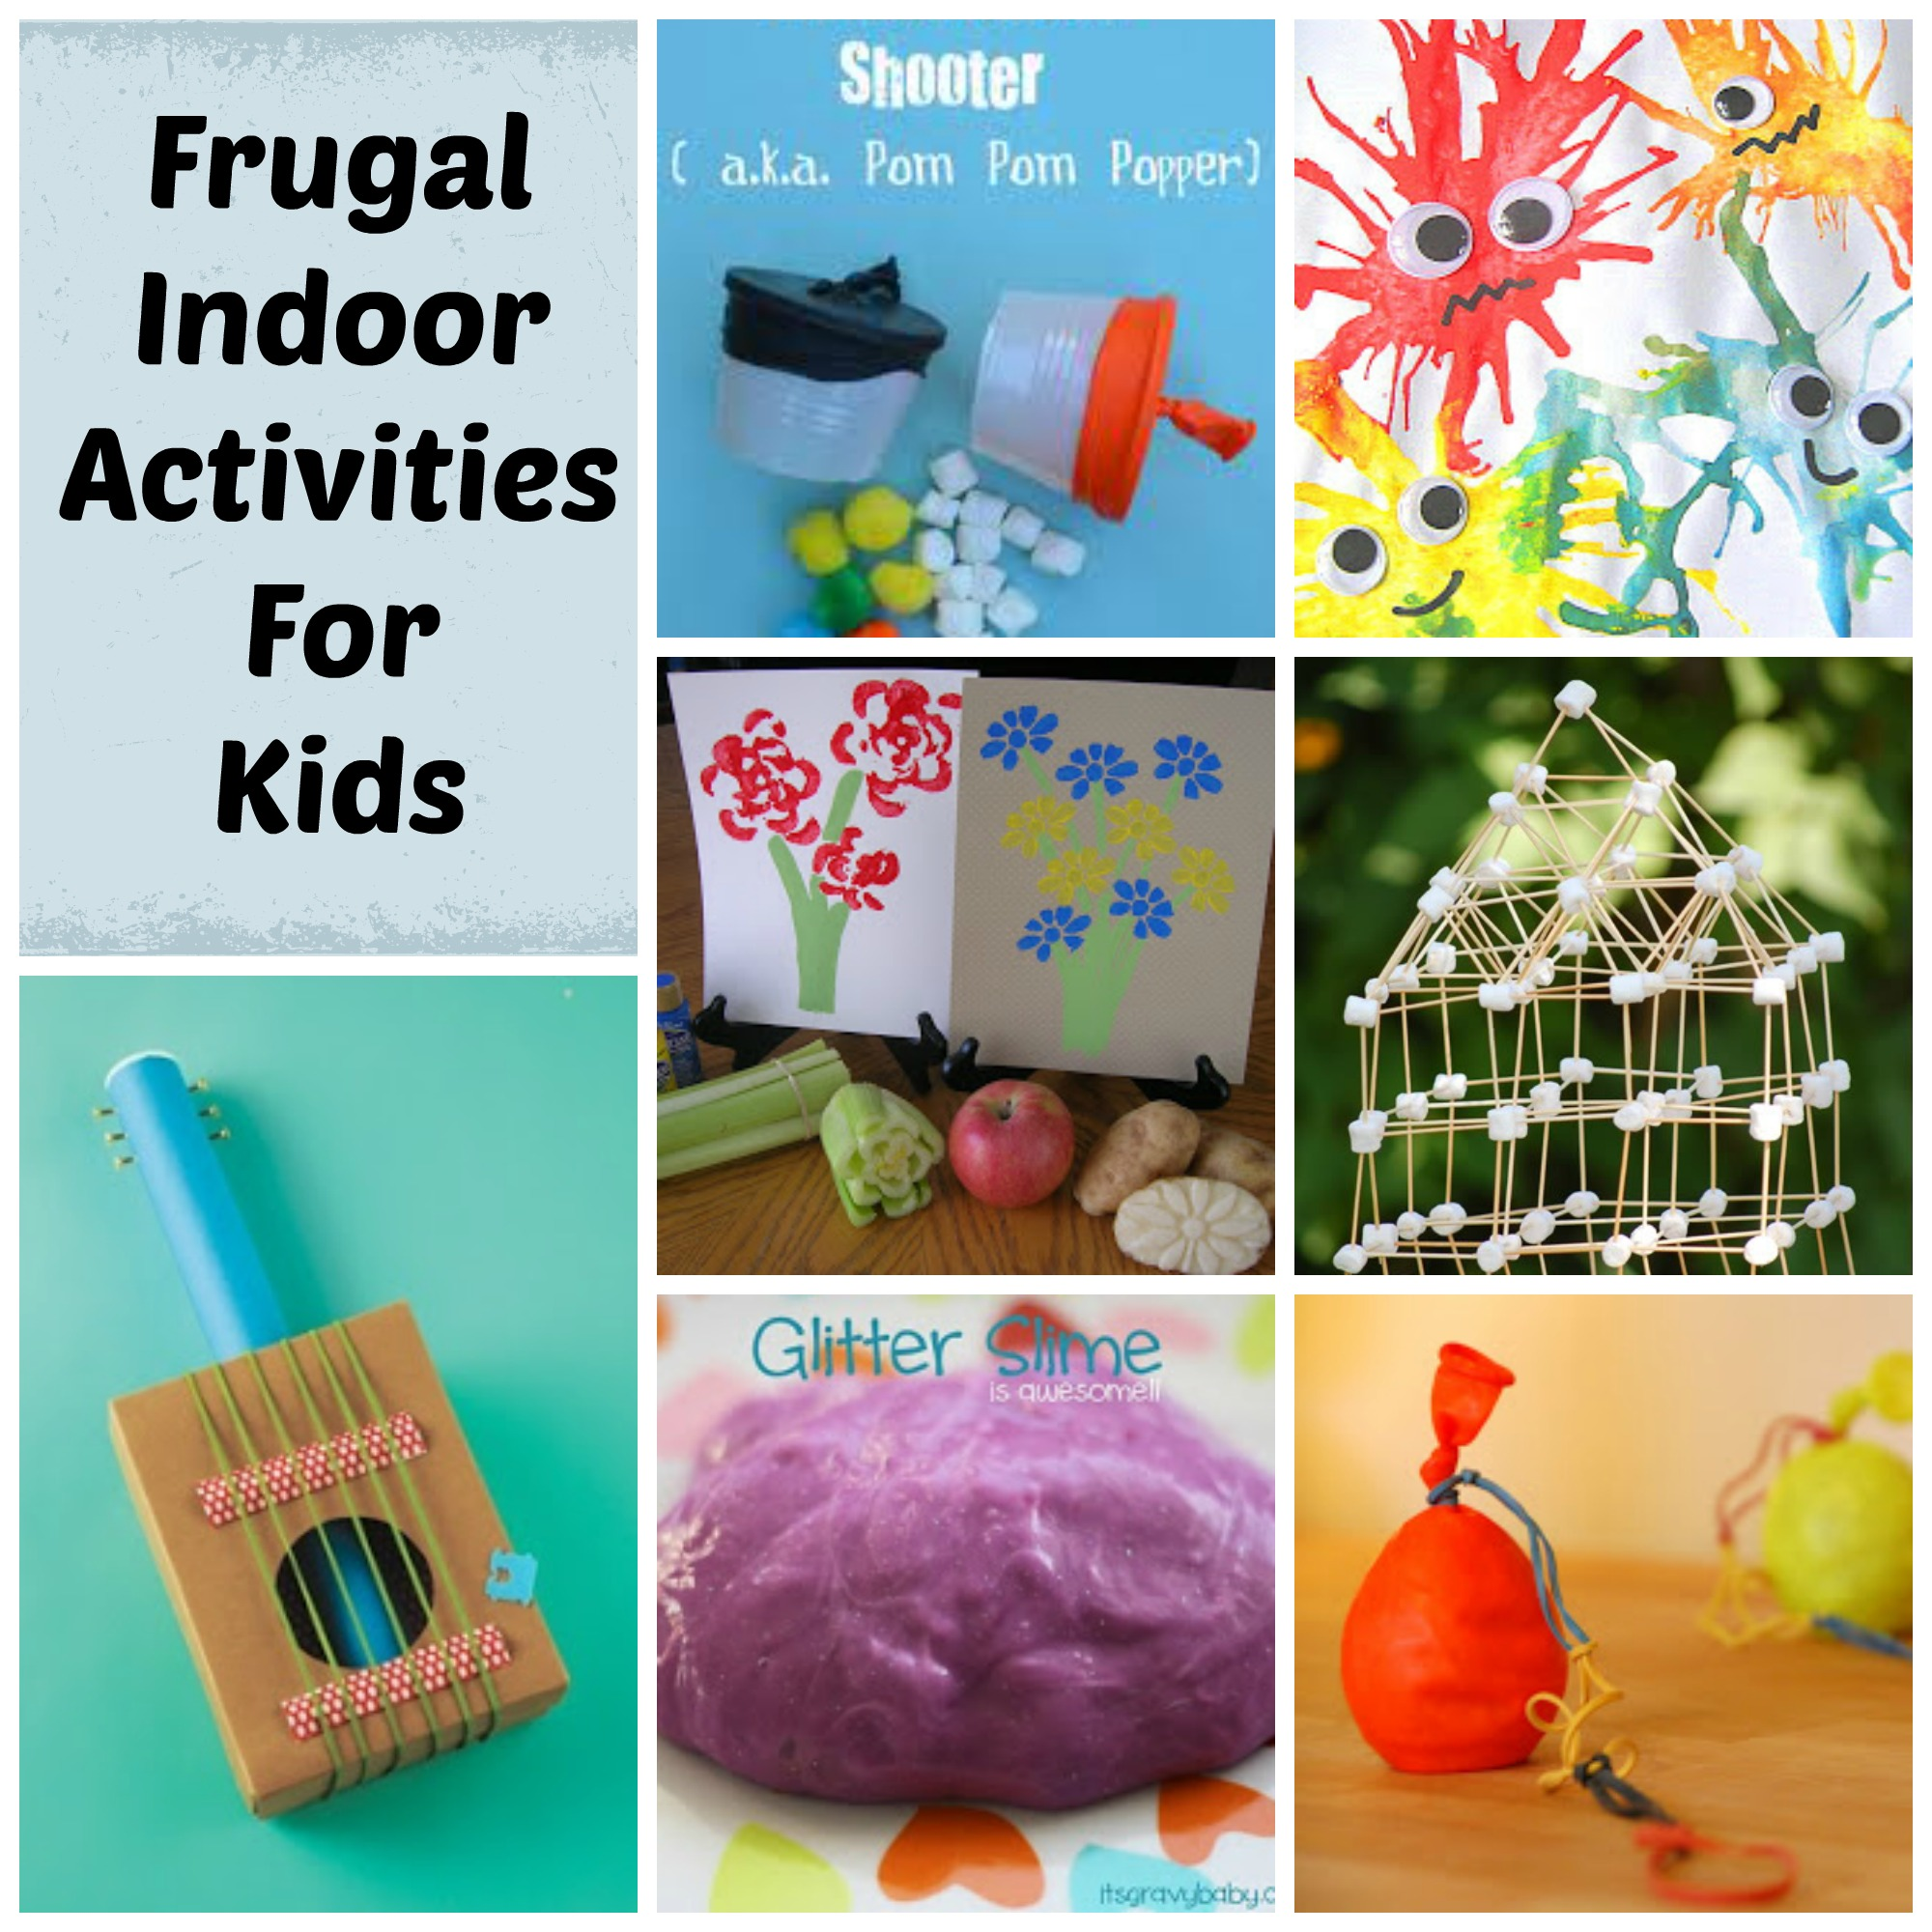 Frugal Indoor Activities For Kids